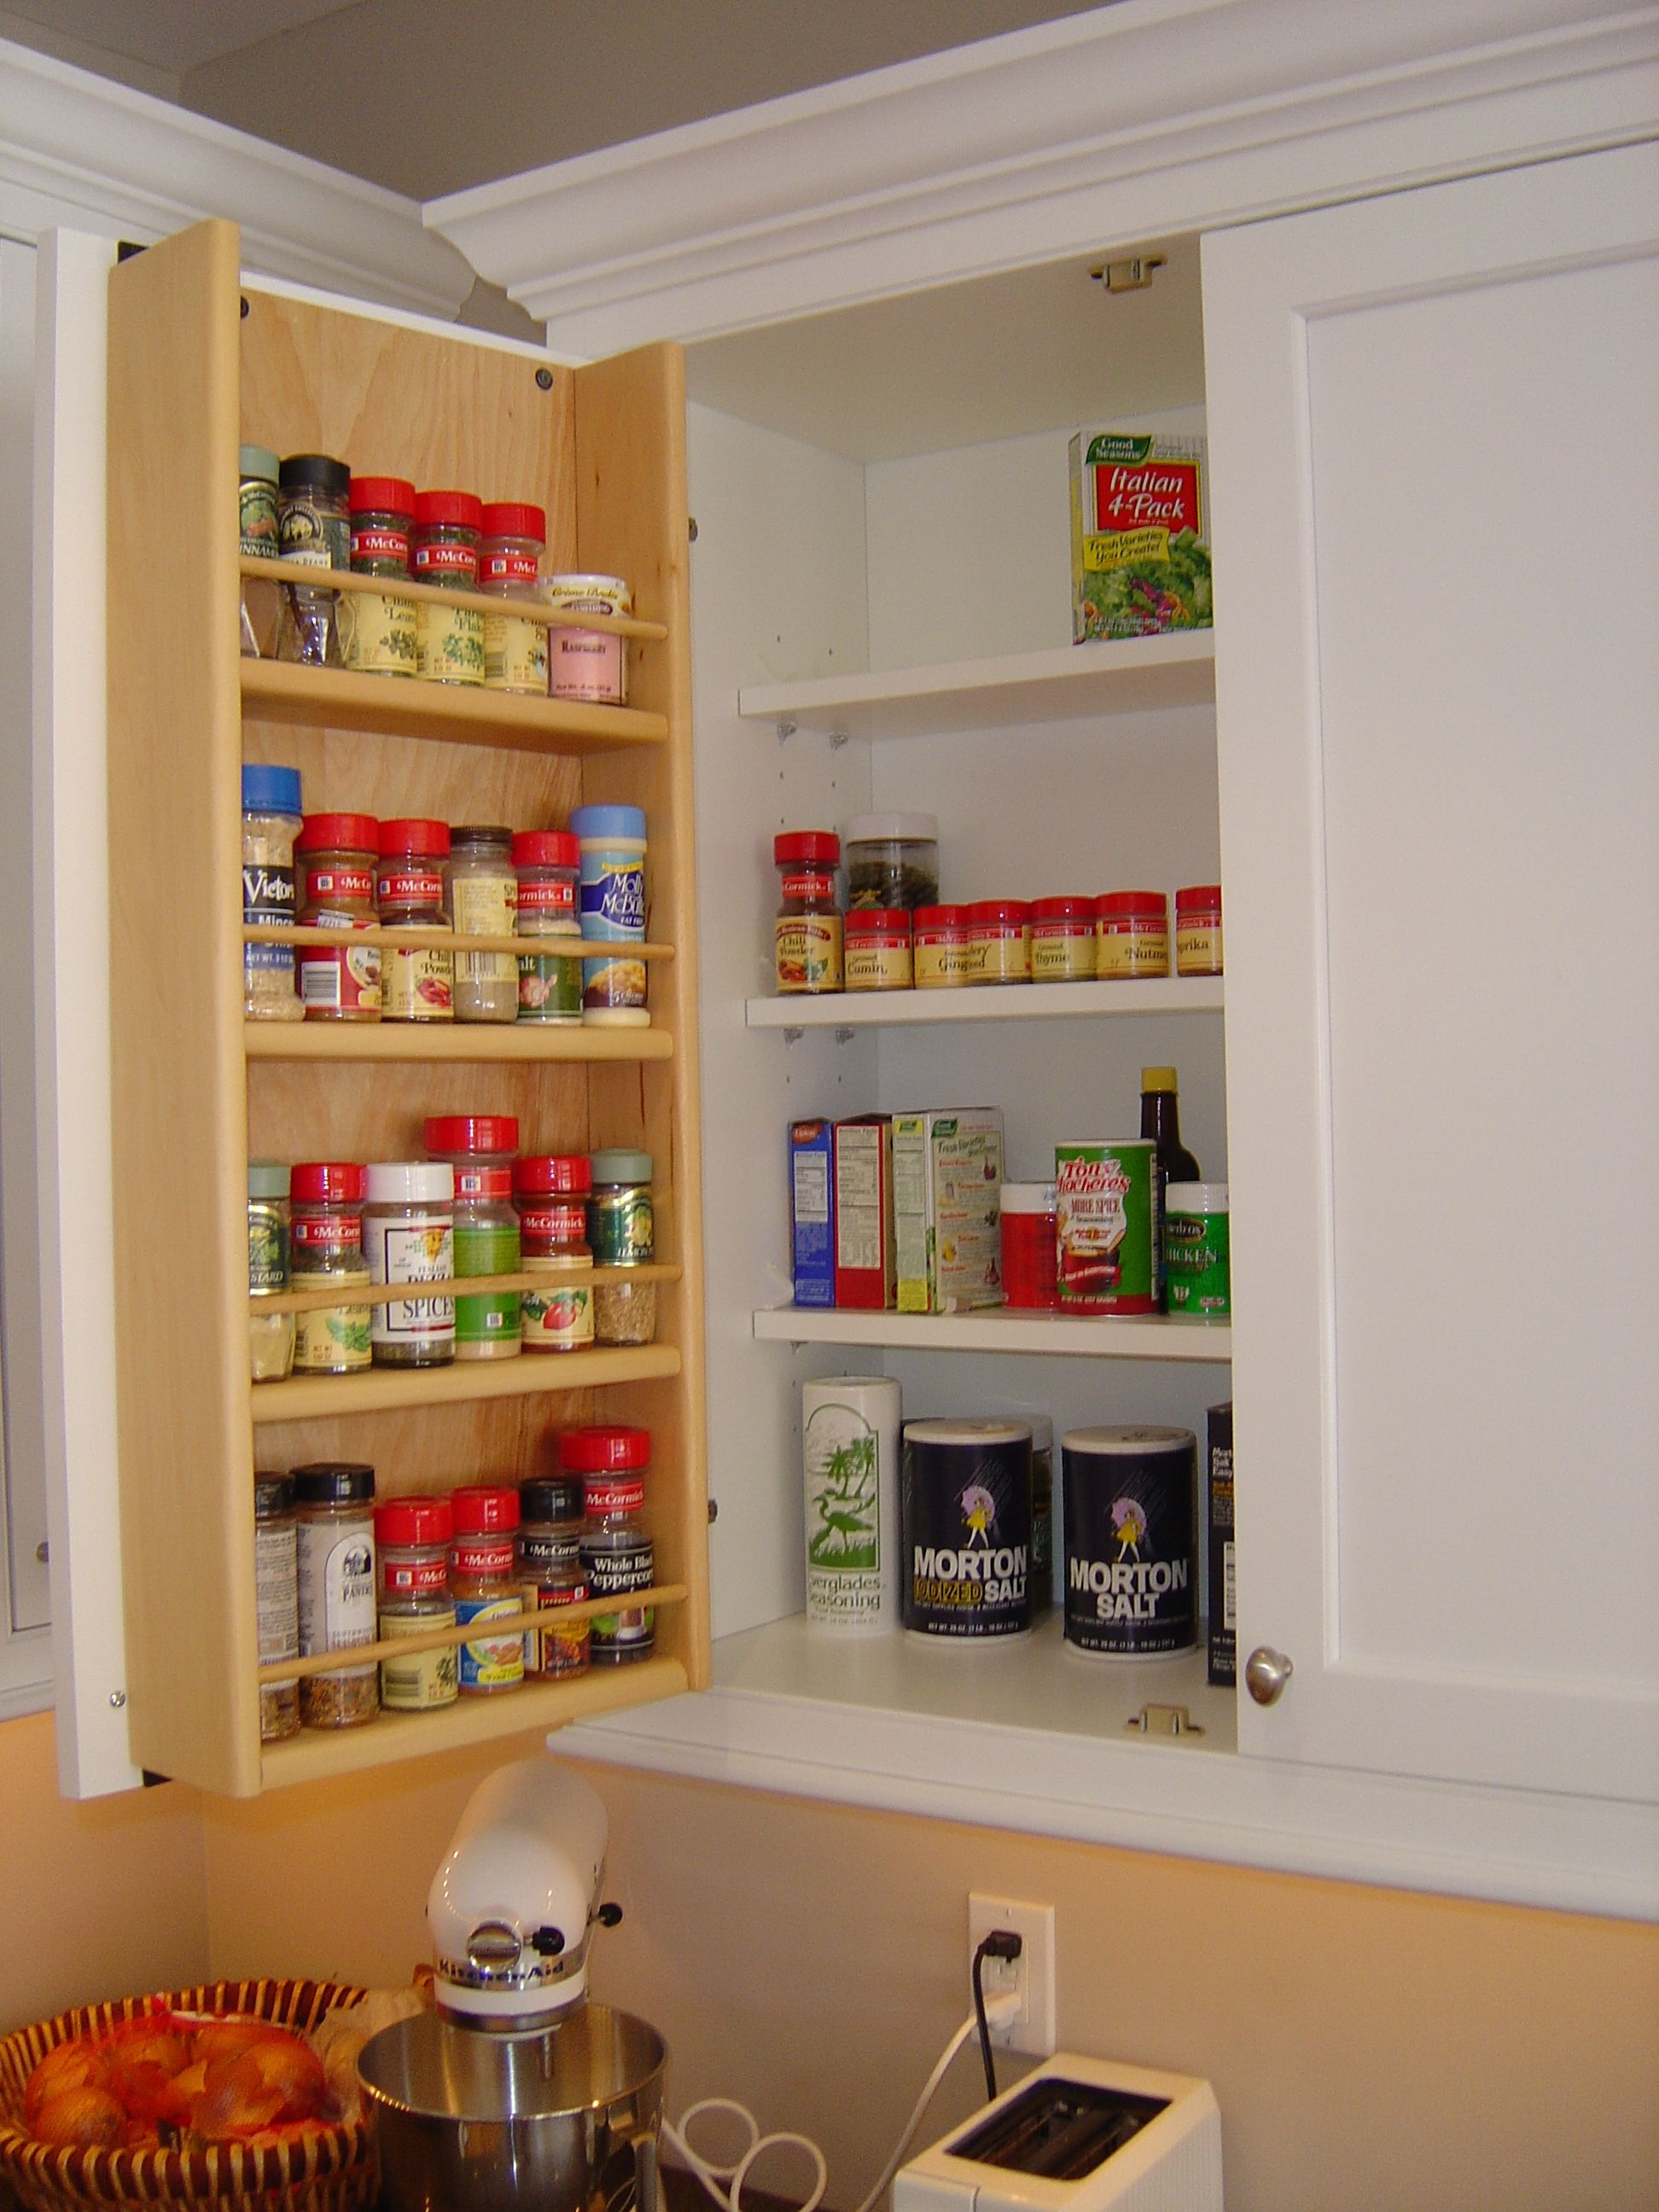 Inside Of Kitchen Cabinets Tedd Wood Spice Storage On Inside Of Cabinet Door